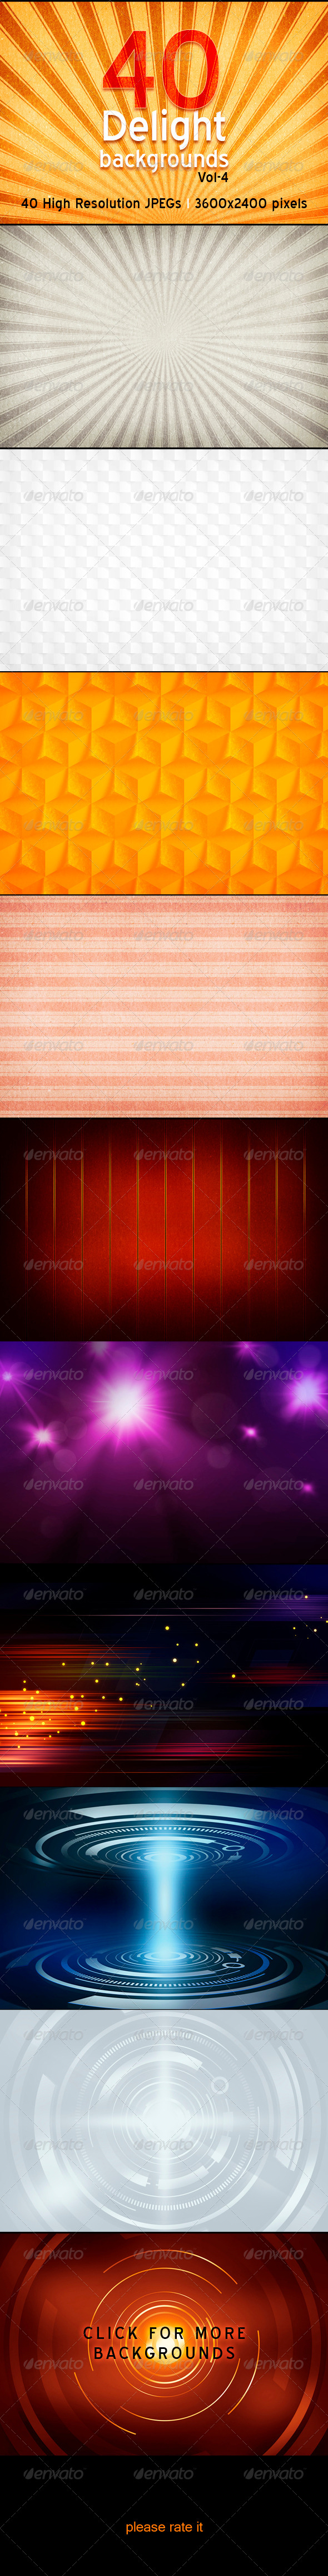 GraphicRiver Delight Backgrounds Vol-4 4177754